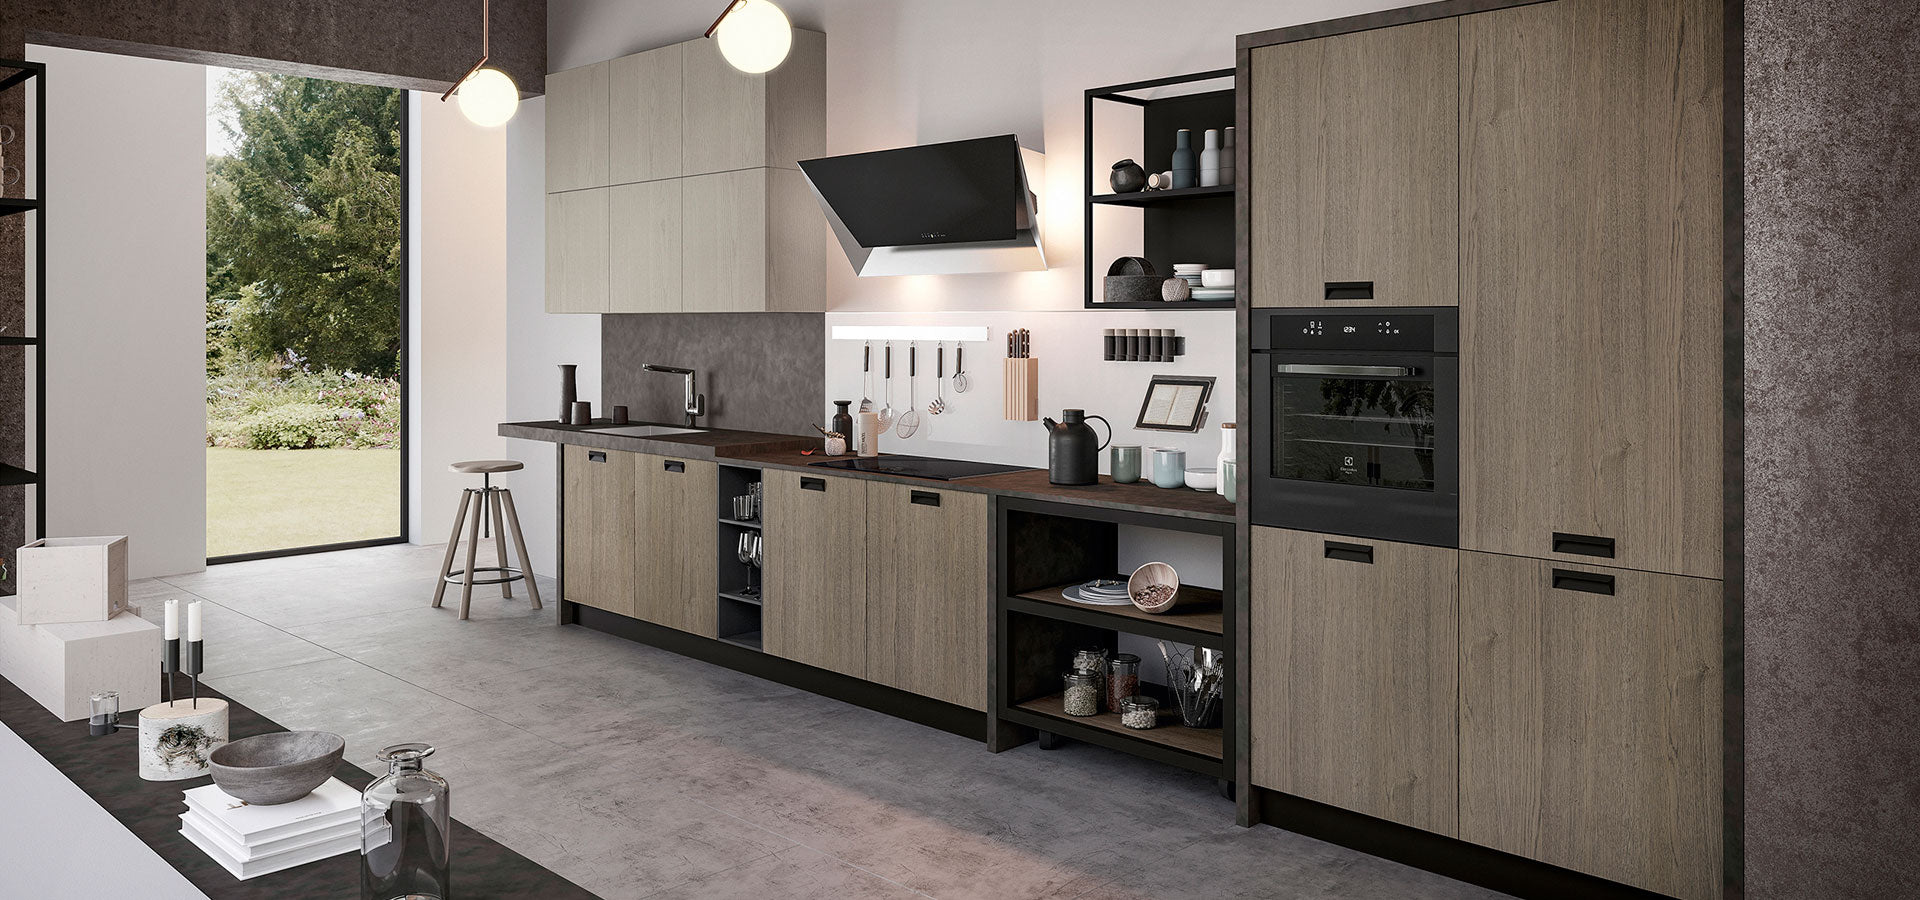 Buy the Asia Factory Kitchen by Arredo3 online from Abitalia South Coast